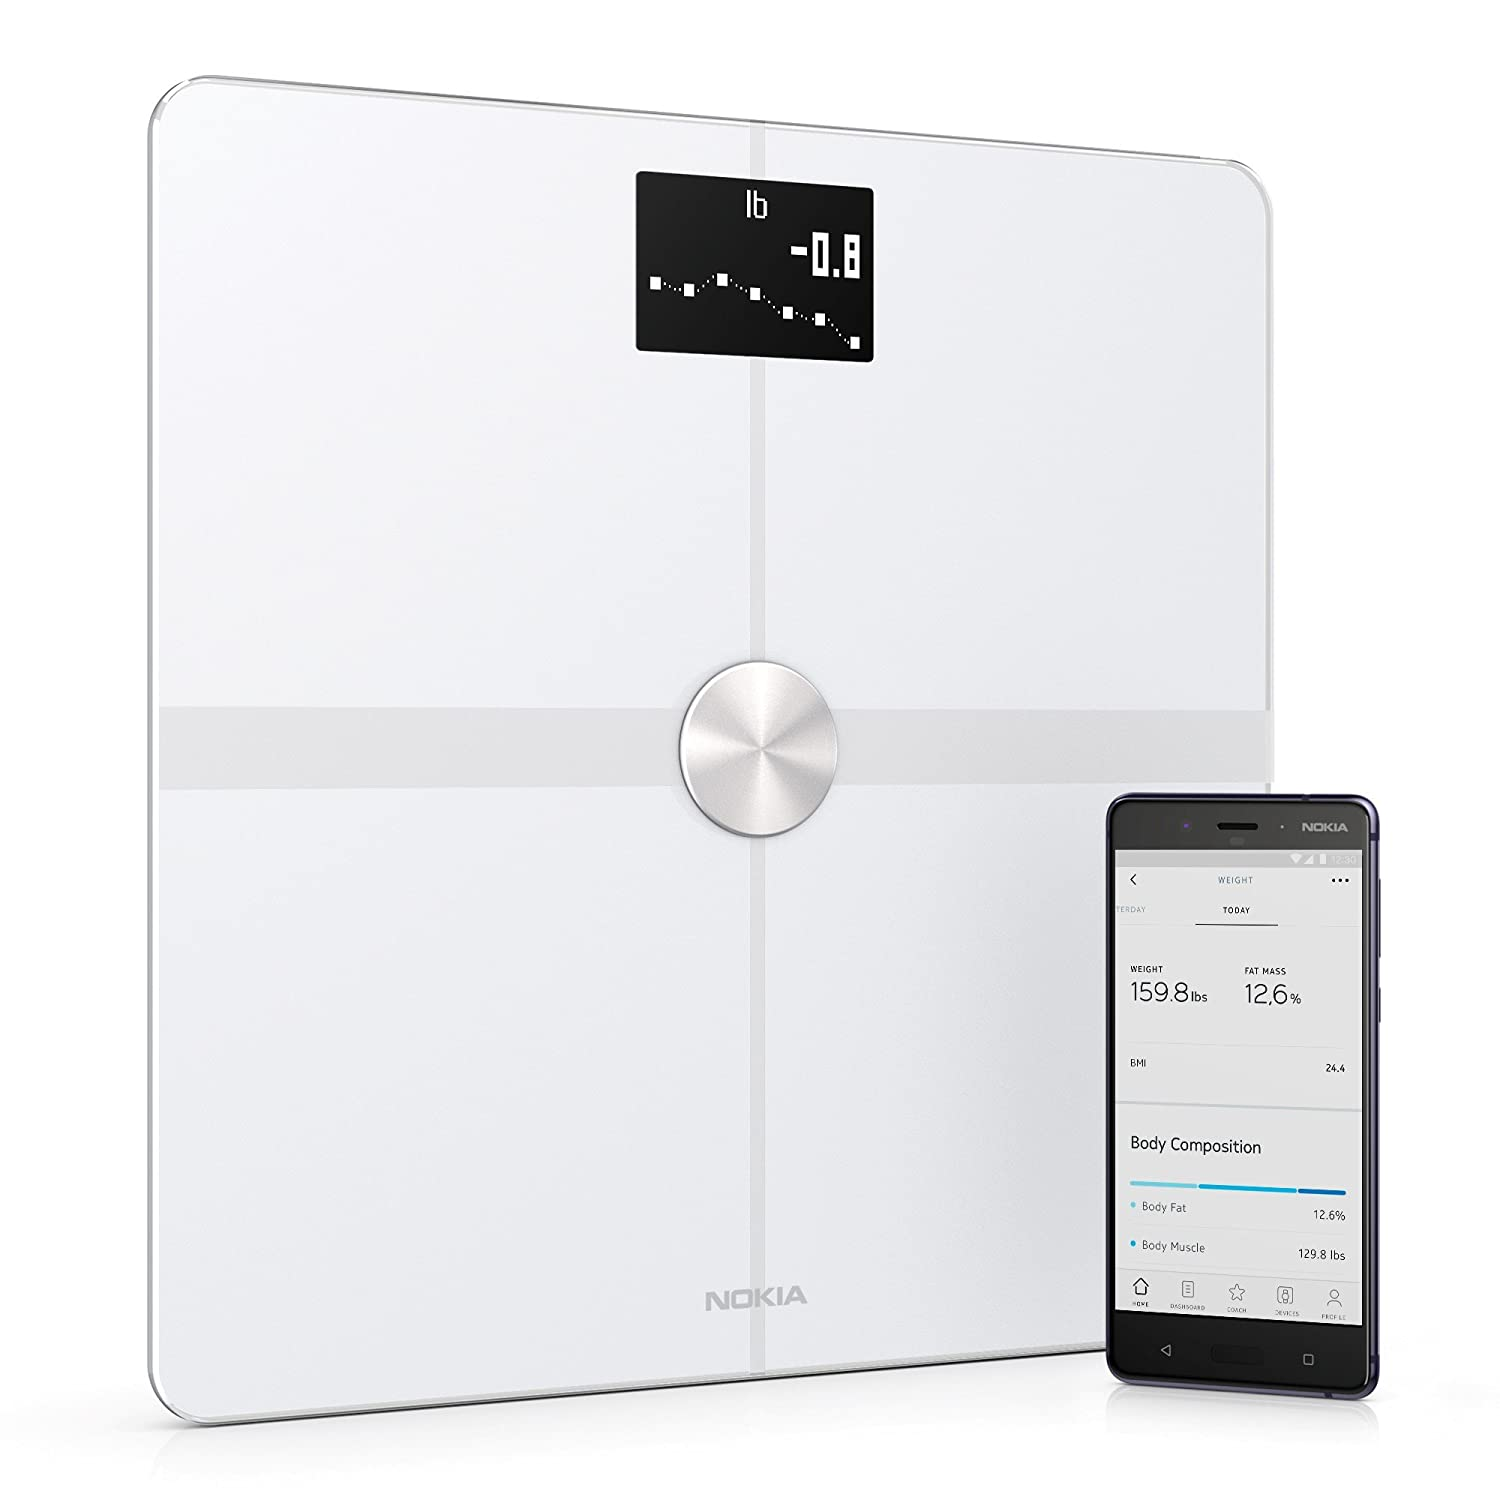 Withings / Nokia | Body+ - Smart Body Composition Wi-Fi Digital Scale with smartphone app, White Withings Inc WBS05-White-All-Inter